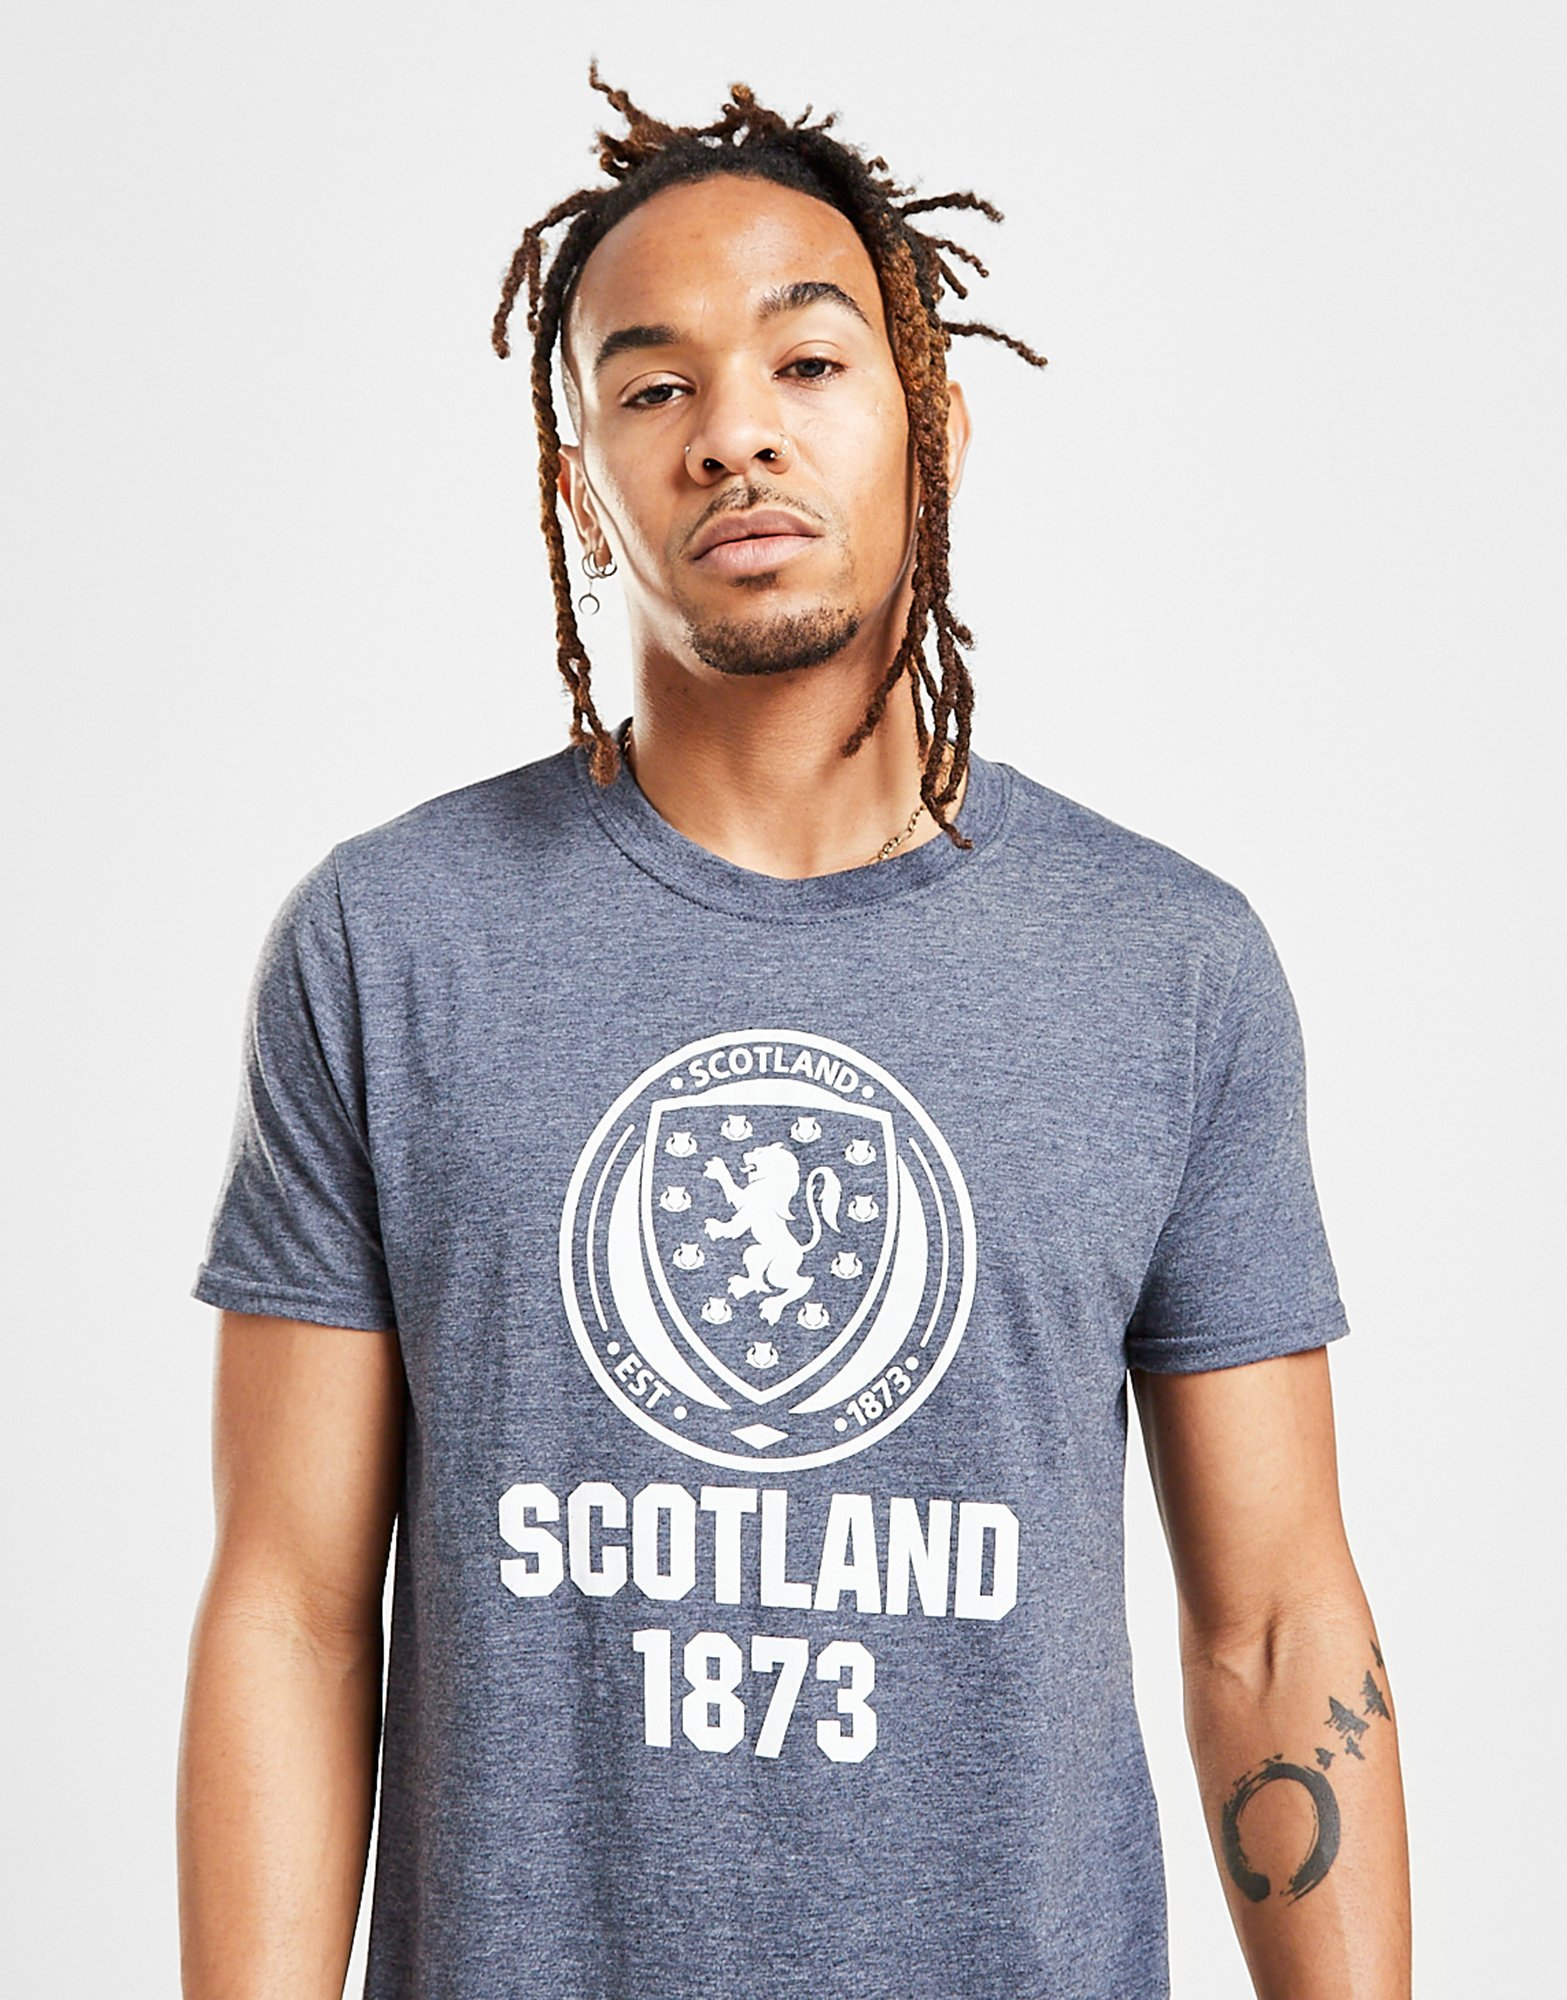 Official Team Scotland FA 1873 Short Sleeve T-Shirt